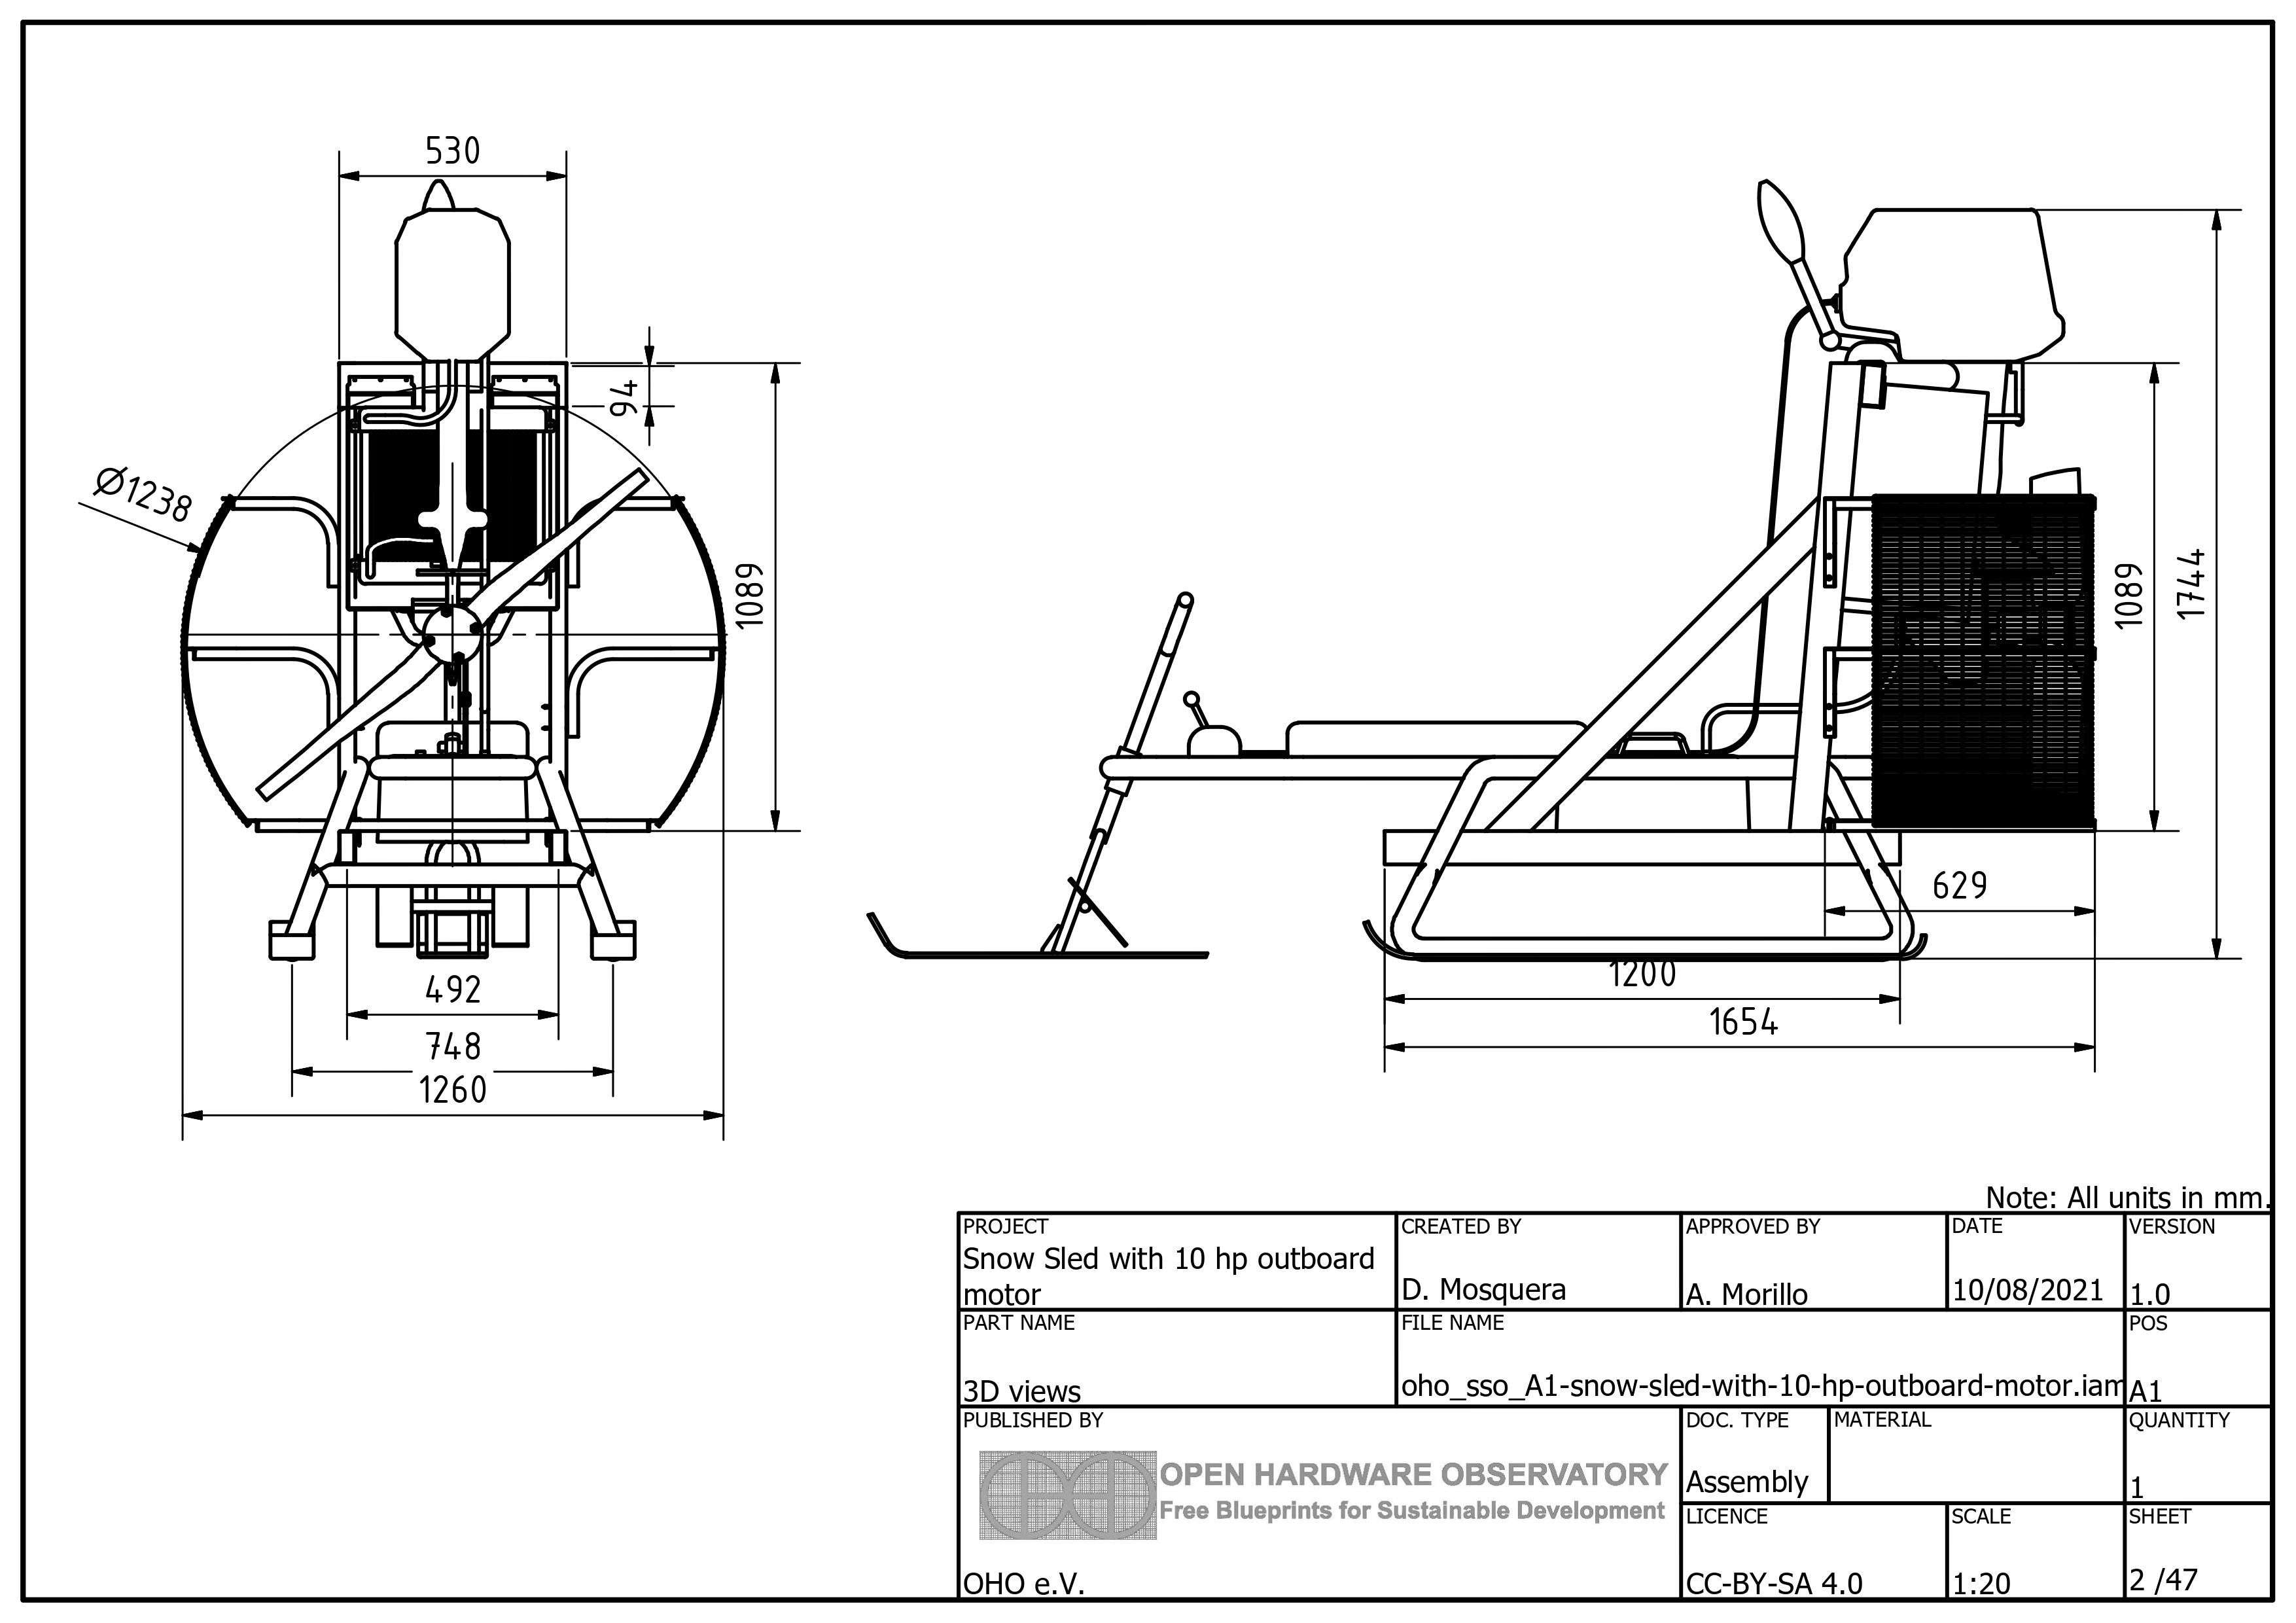 Oho sso snow-sled-with-10-hp-outboard-motor 0002.jpg